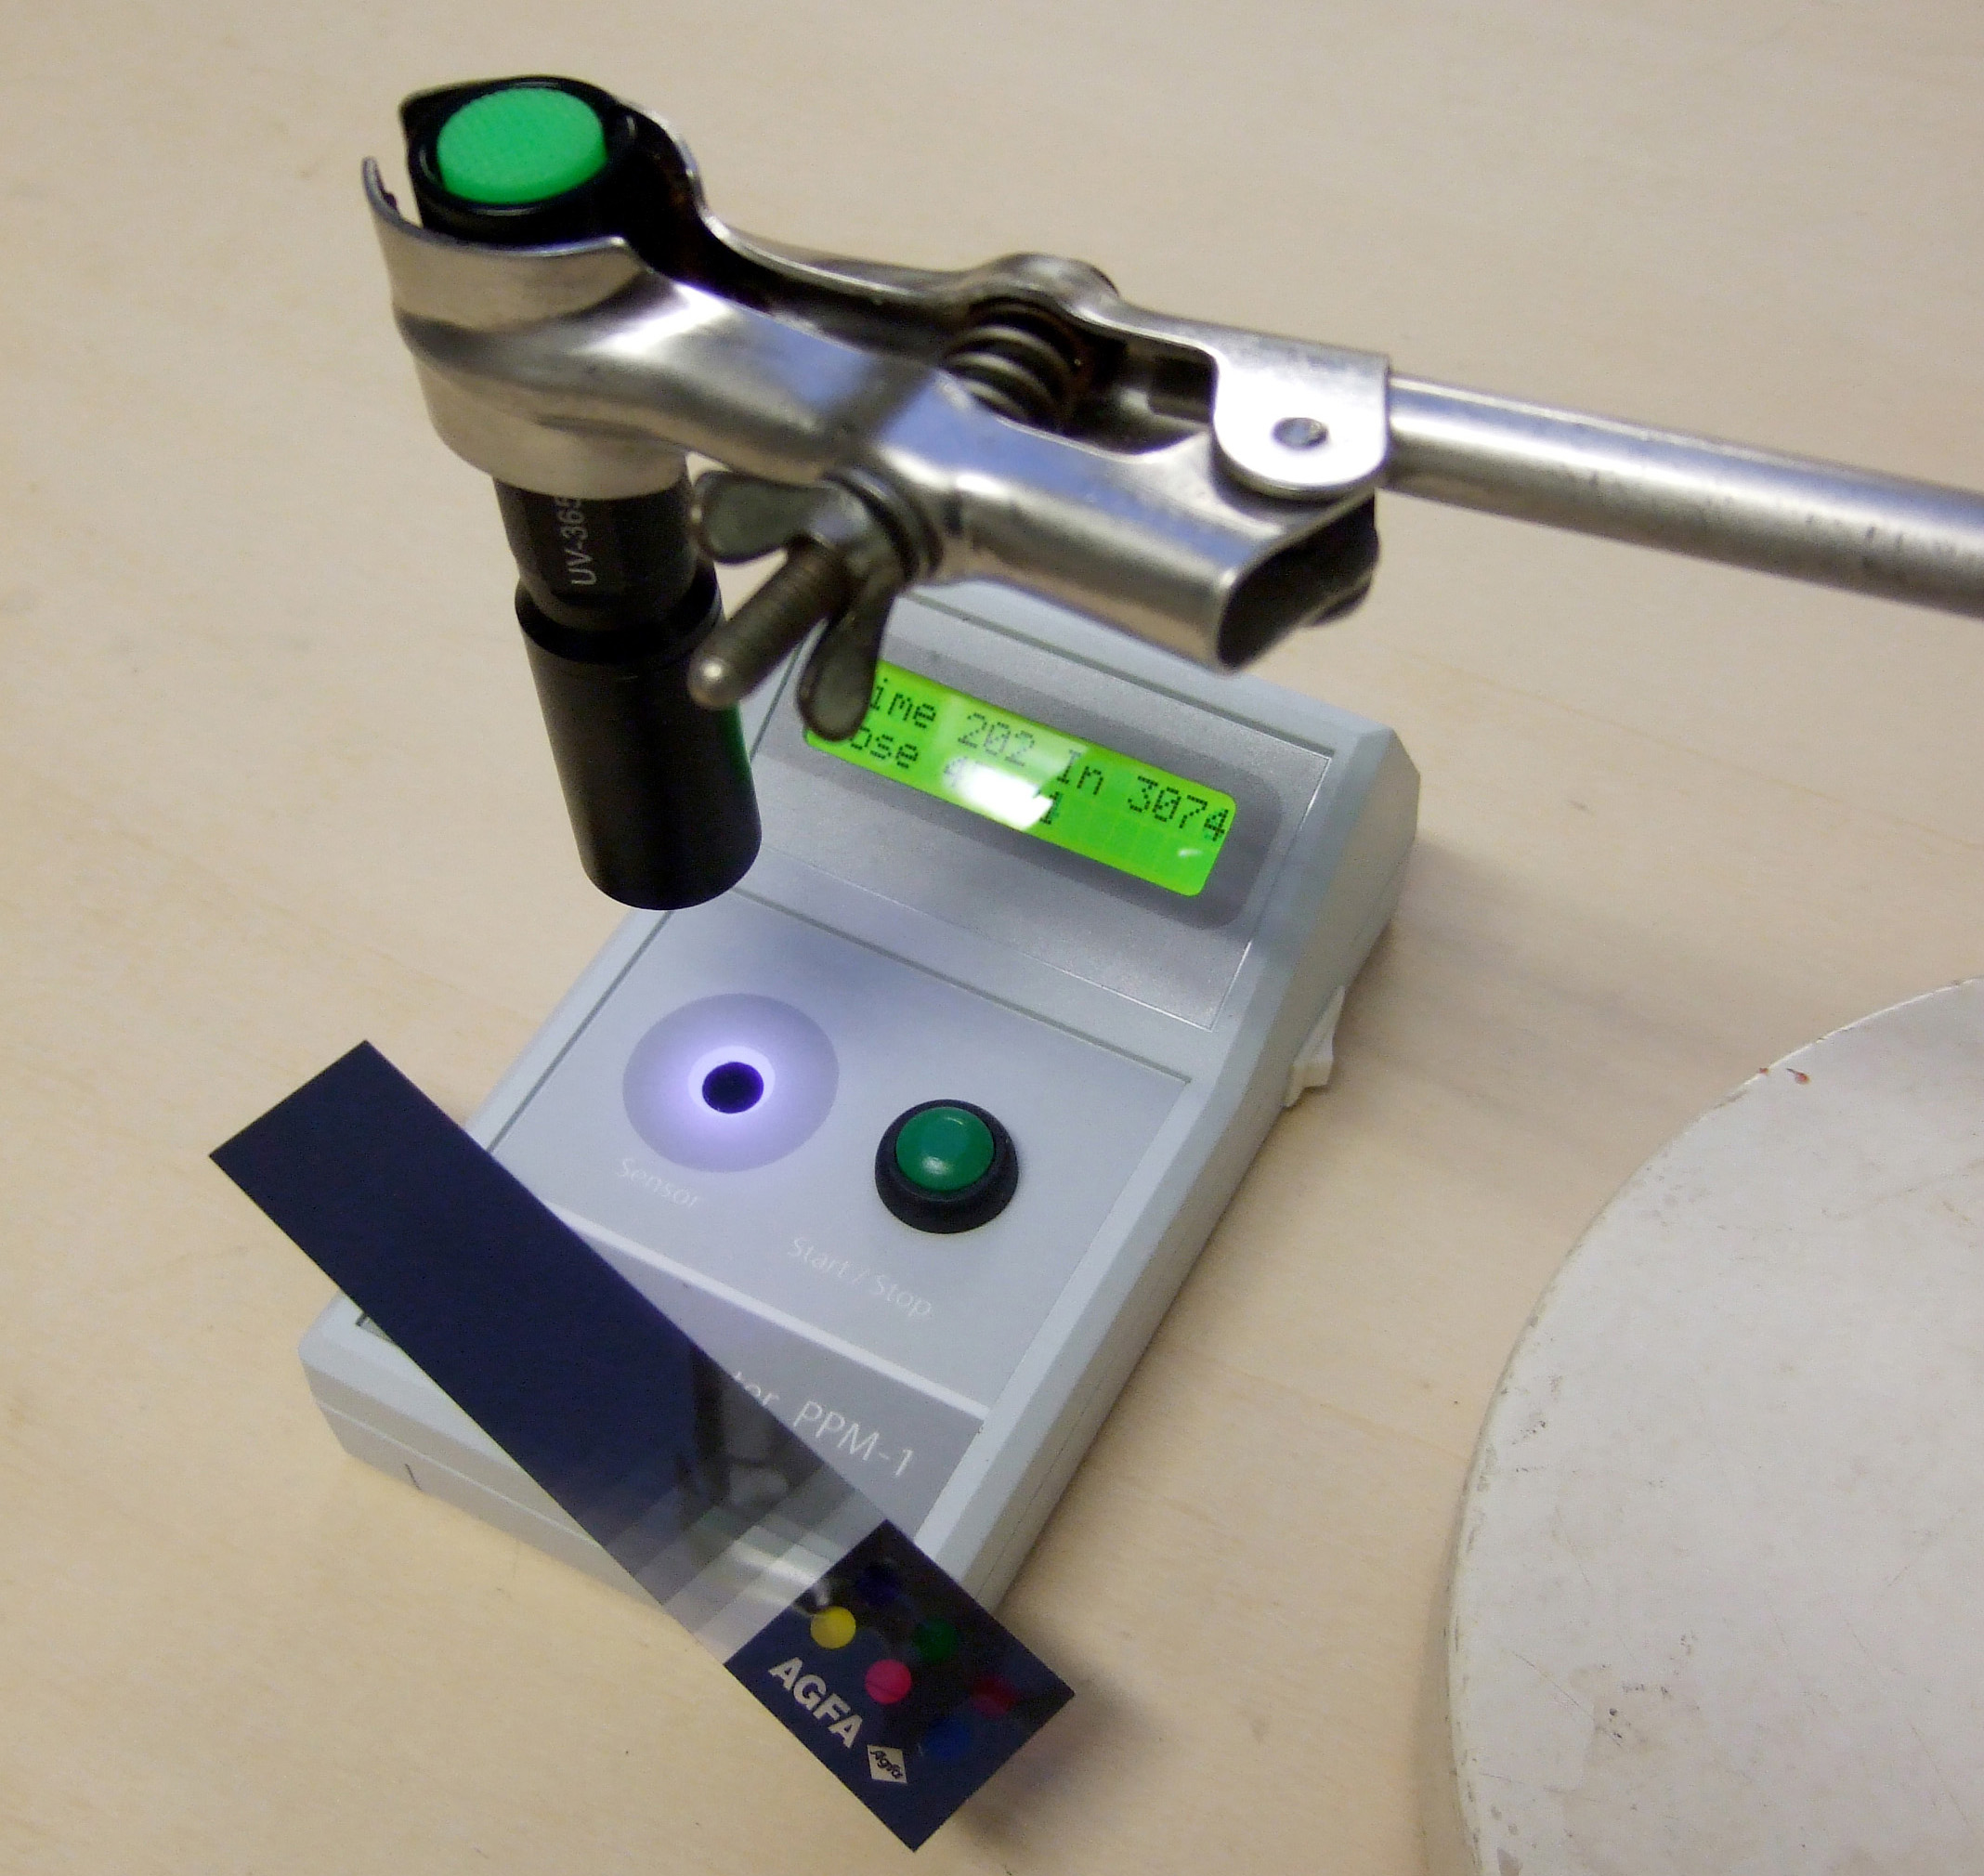 PPM-1 used as a UV densitometer for negatives,with a 365nm LED source - courtesy of    Kees Brandenburg   , Netherlands